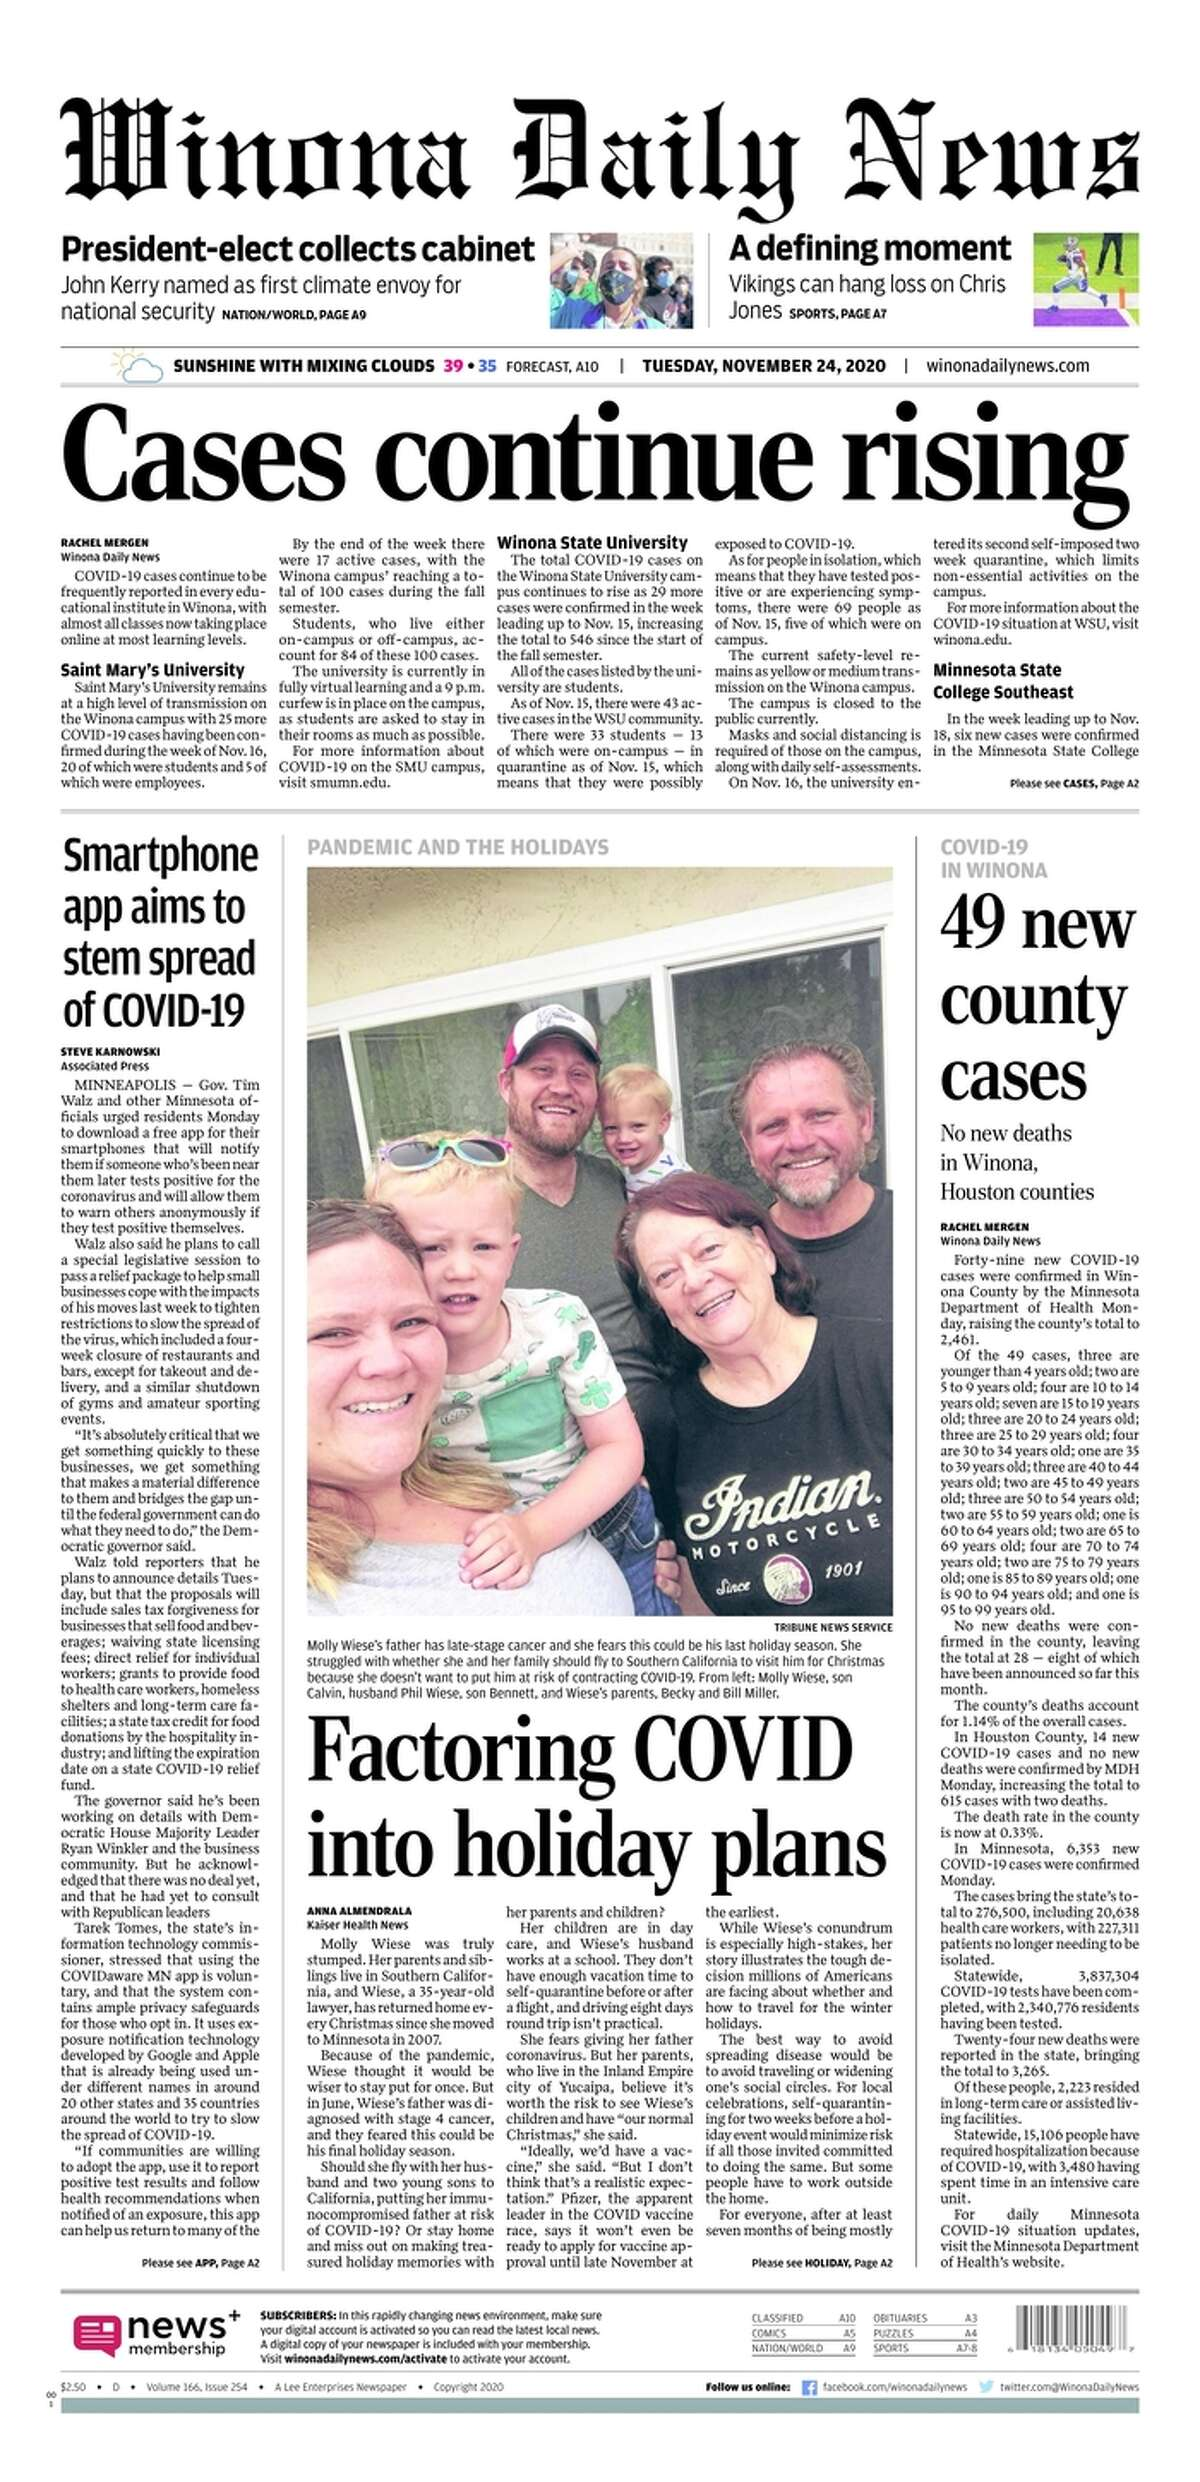 The front page of the Winona Daily News, a Minnesota newspaper, on Nov. 24, 2020.